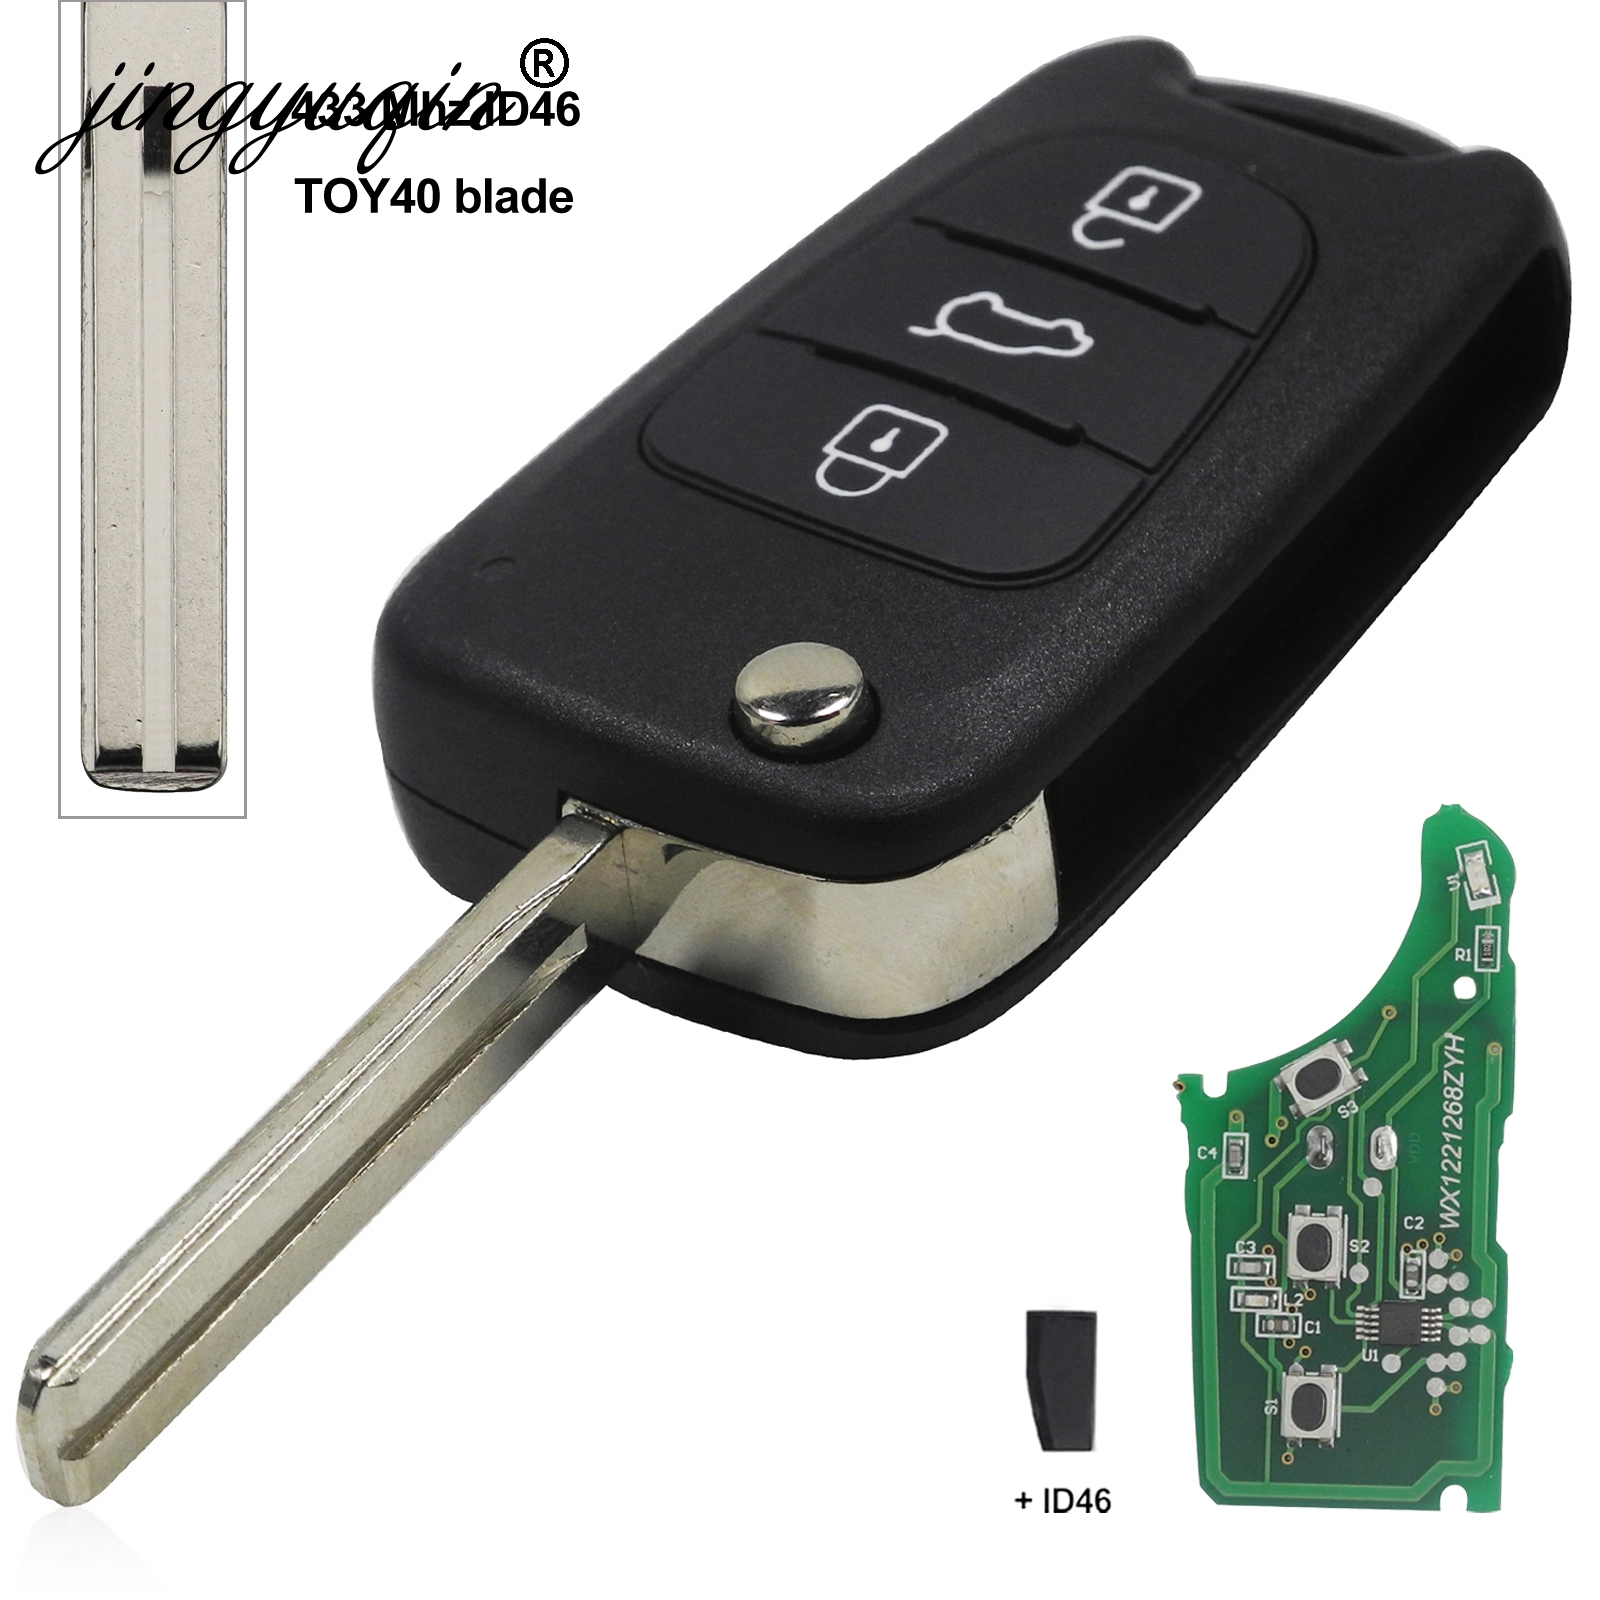 Image 2 - jingyuqin For Hyundai I20 I30 IX35 Avante 433Mhz ID46 Chip 3 Buttons Flip Folding Car Remote Key Fob-in Car Key from Automobiles & Motorcycles